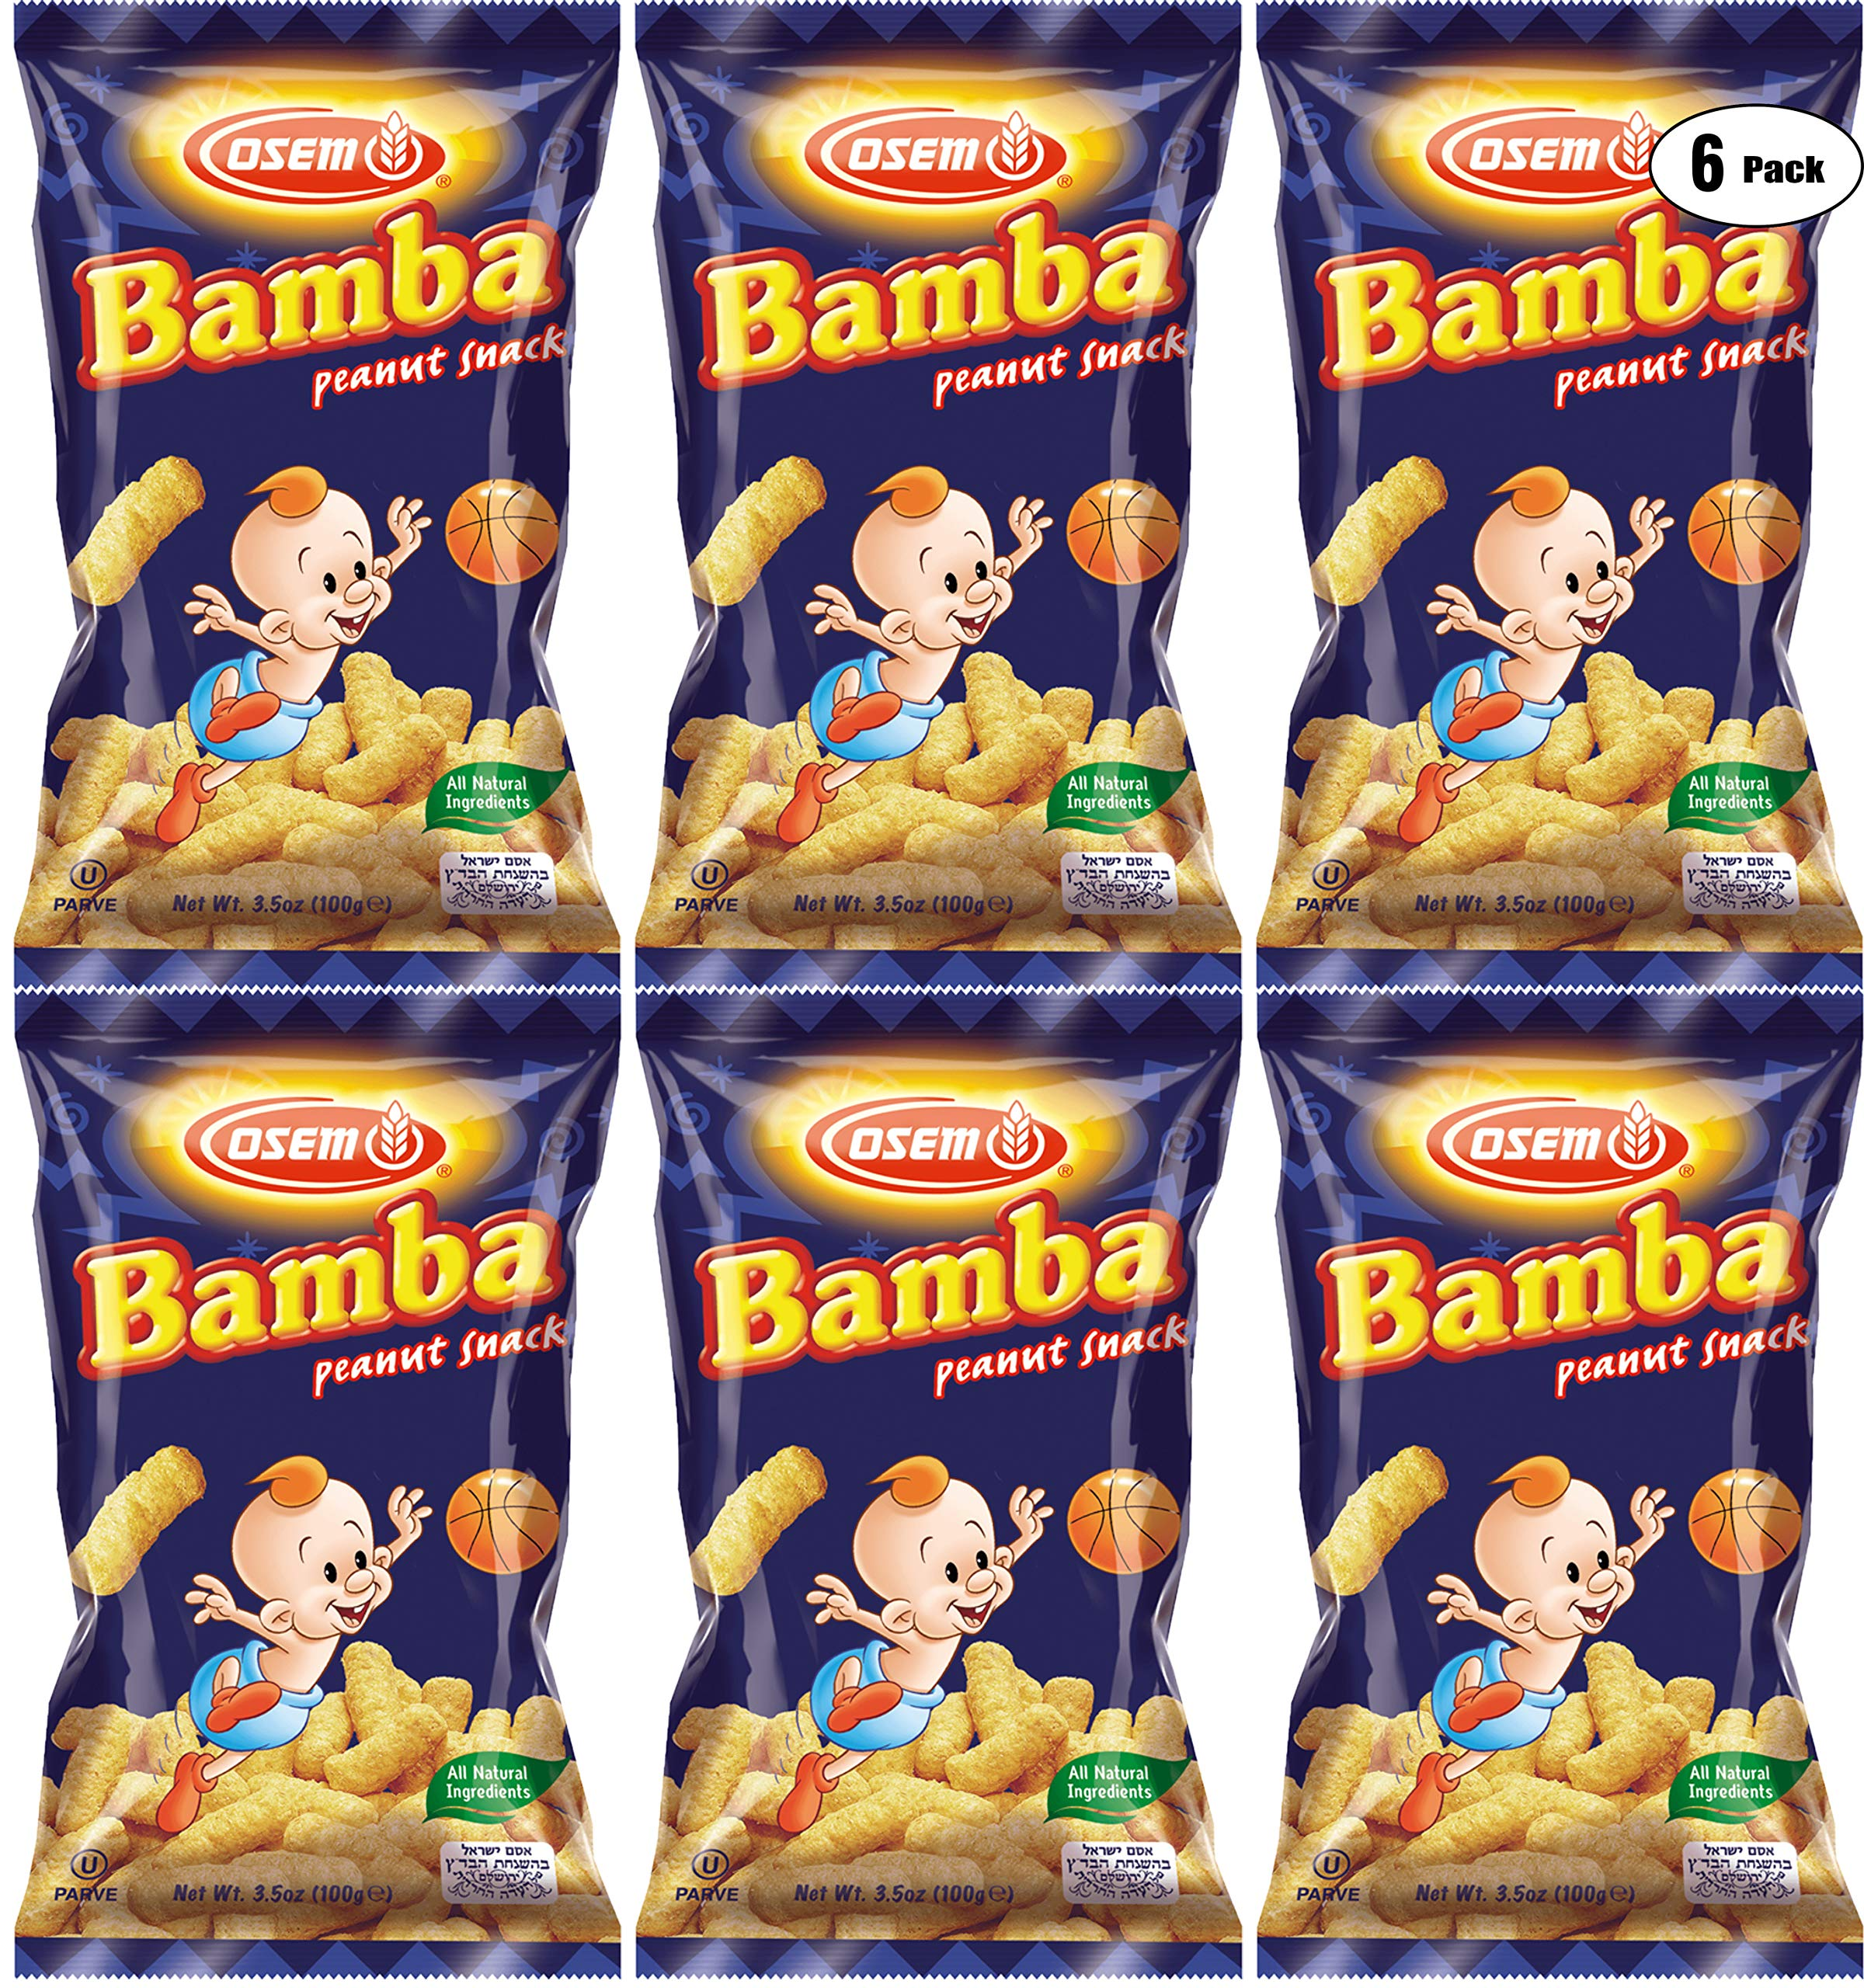 Bamba Peanut Butter Snacks All Natural Peanut Butter Corn Puff Snack (Pack of 6, 3.5oz Bags) by Osem